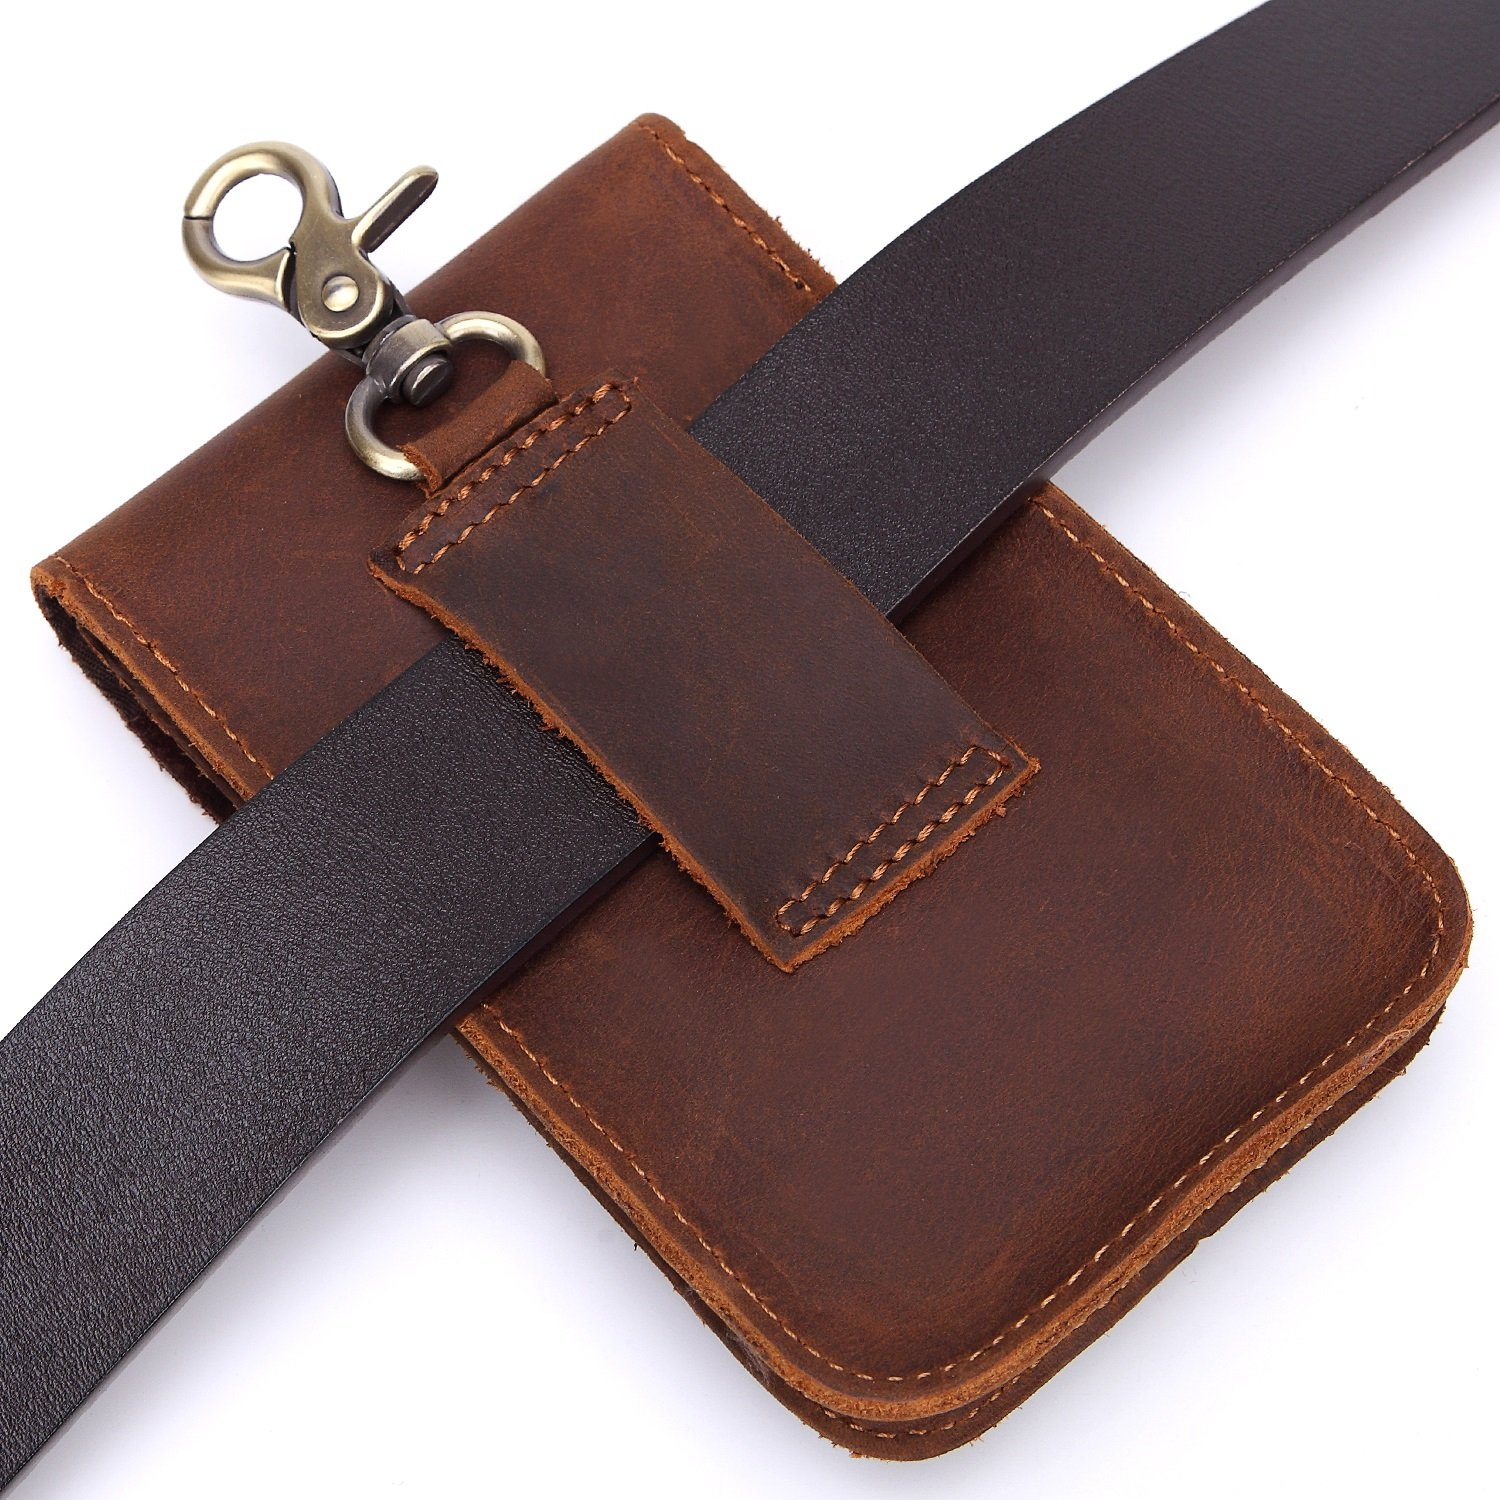 Color : Brown, Size : L DAYIYANG Special Design Mens Waist Bag Vintage Leather Small Bags First Layer Leather Multi-Function Belts Magnetic Buckle